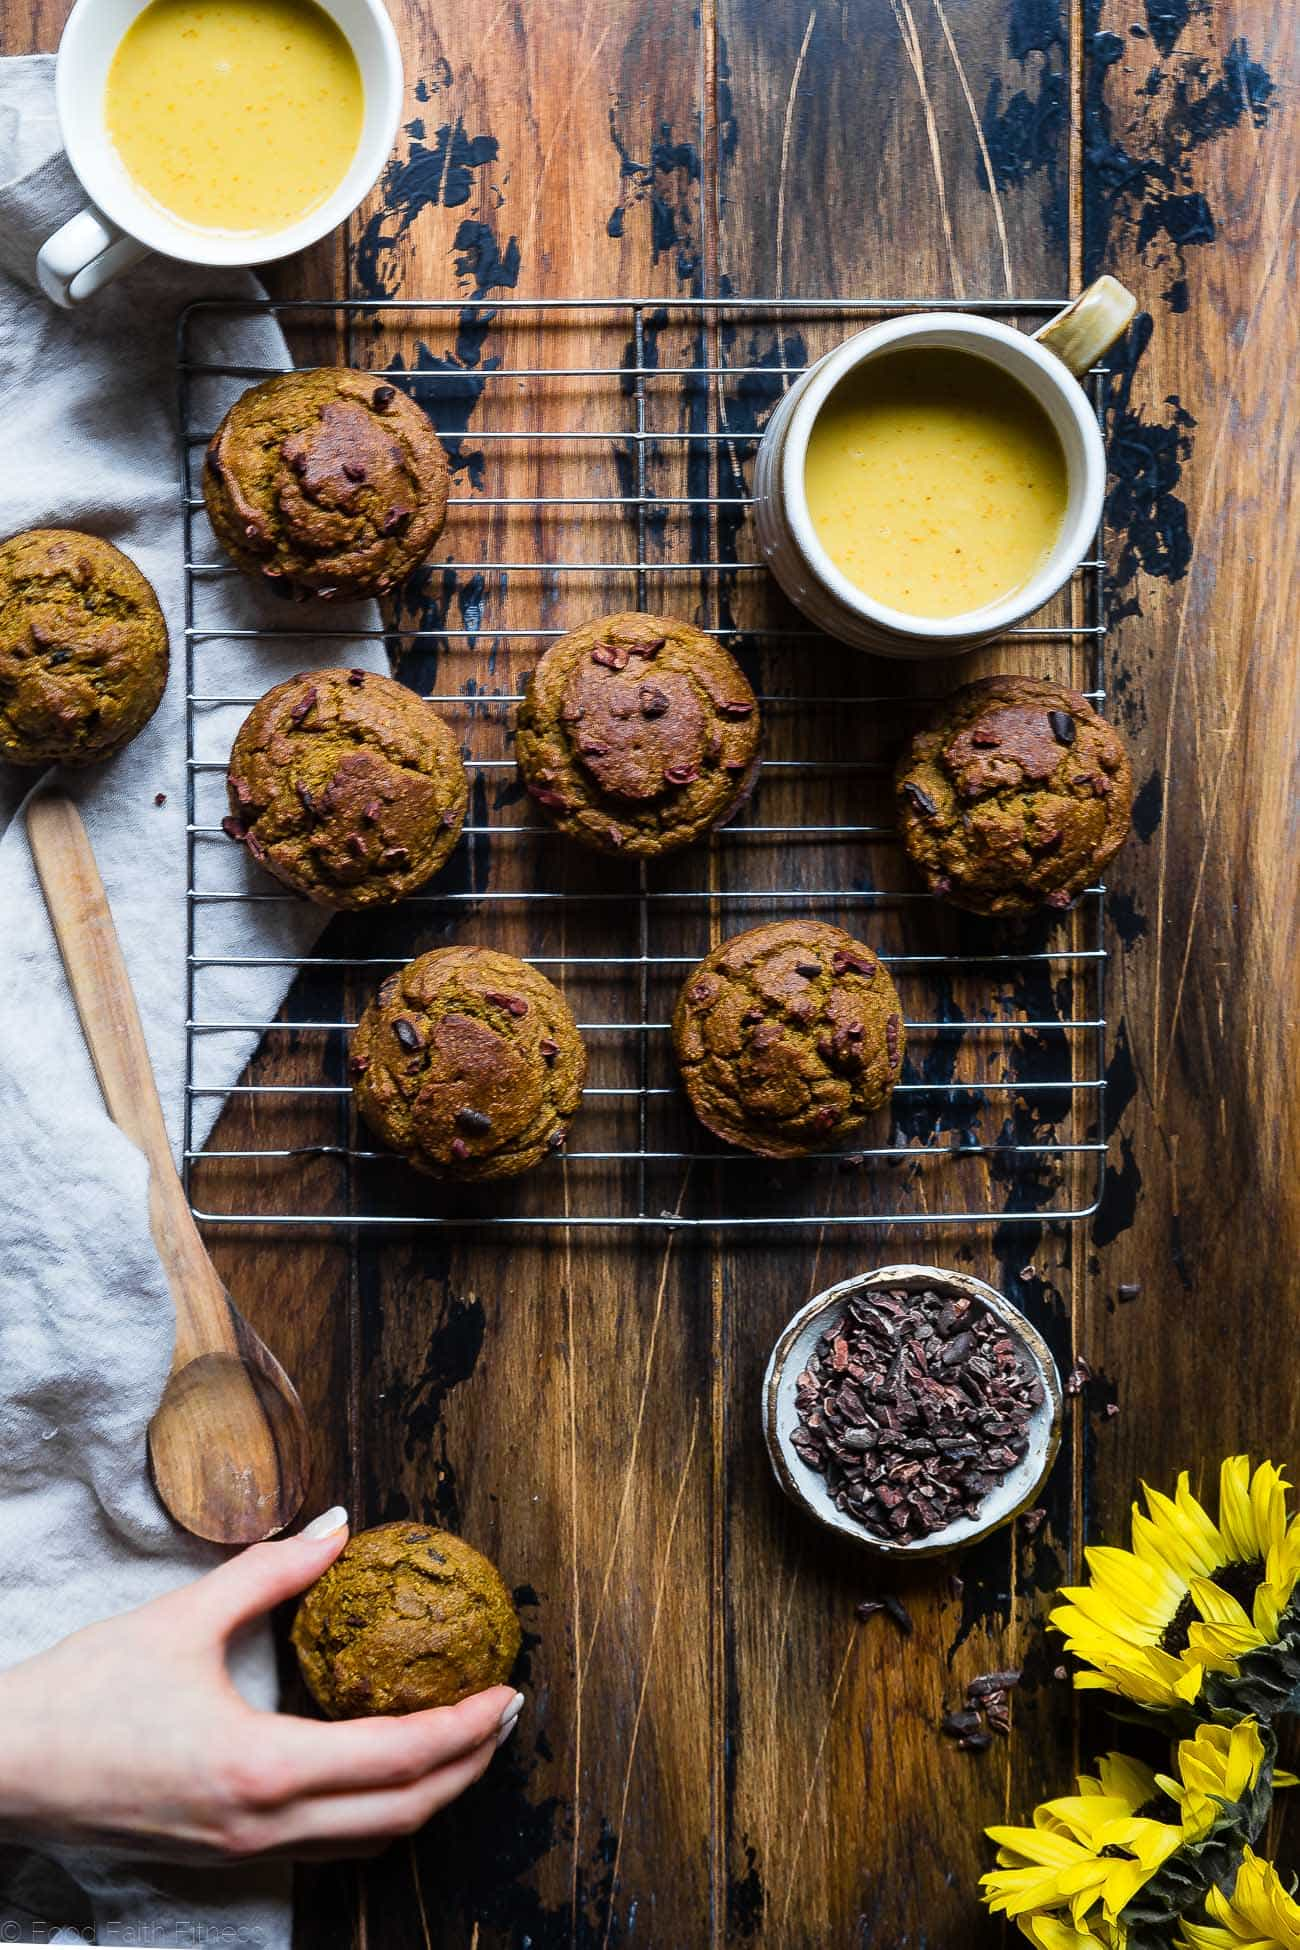 Sugar Free Turmeric Banana Muffins -These anti-inflammatory, healthy banana muffins are loaded with crunchy cocoa nibs! Gluten free, vegan friendly, low fat and only 180 calories! Perfect for a quick breakfast! | Foodfaithfitness.com | @FoodFaitFit